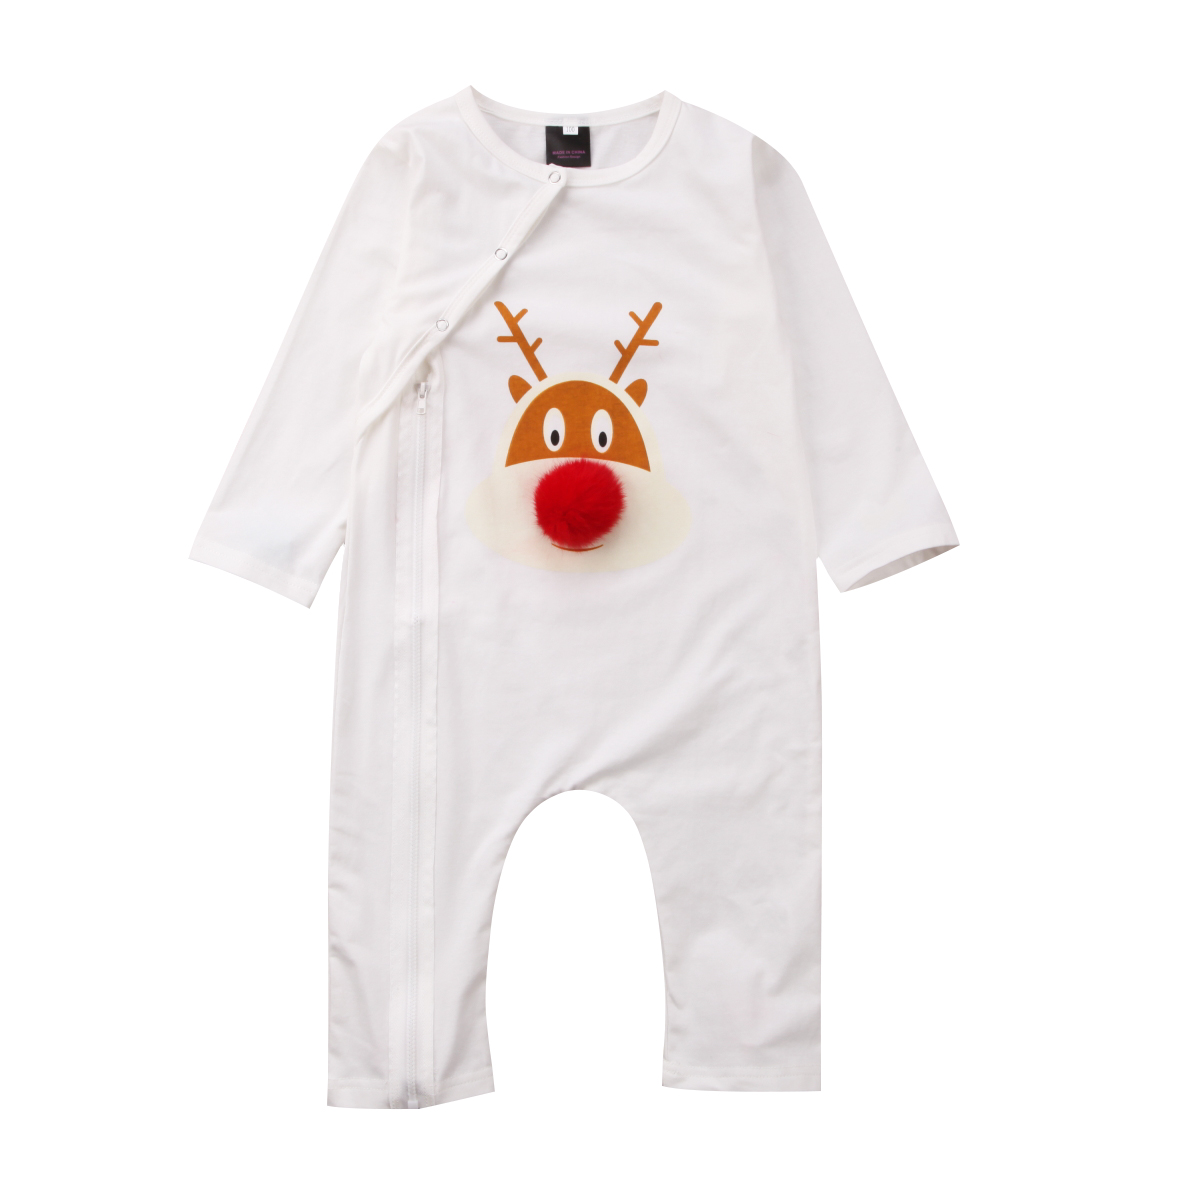 2017 newborn xmas pajamas set christmas cosplay romper long sleeves baby deer sleepwear cute nightwear